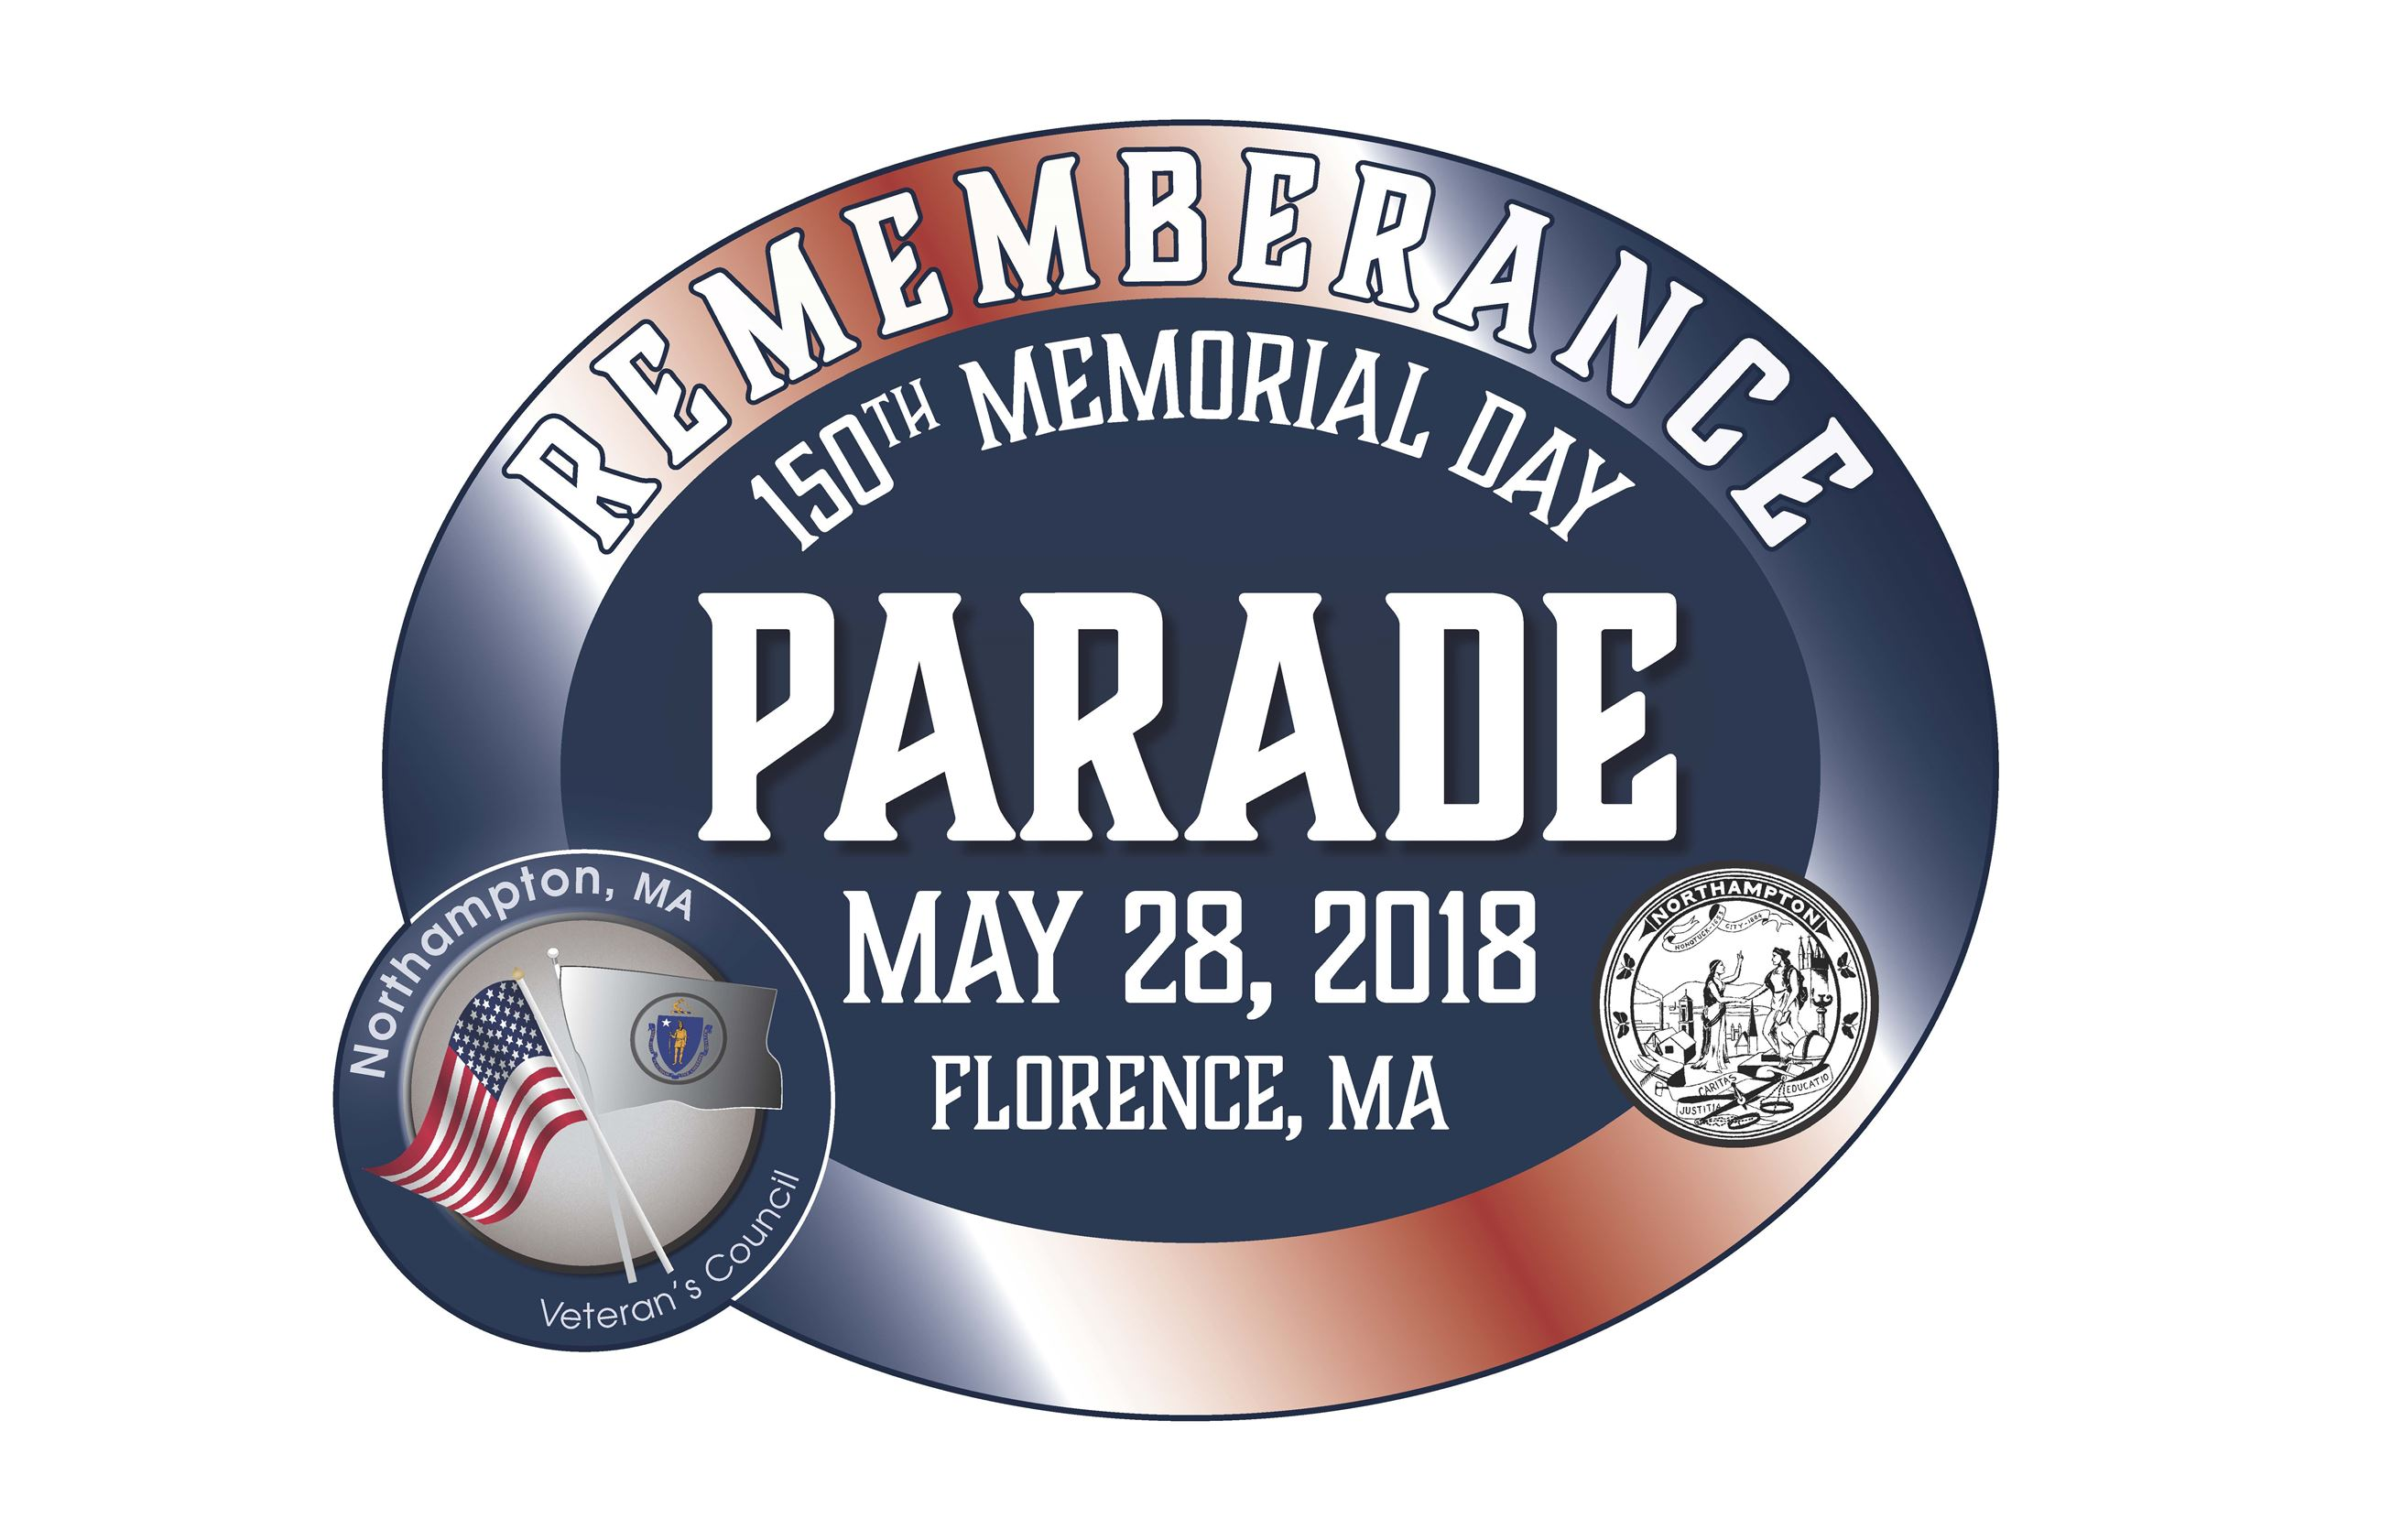 Florence Memorial Day Parade